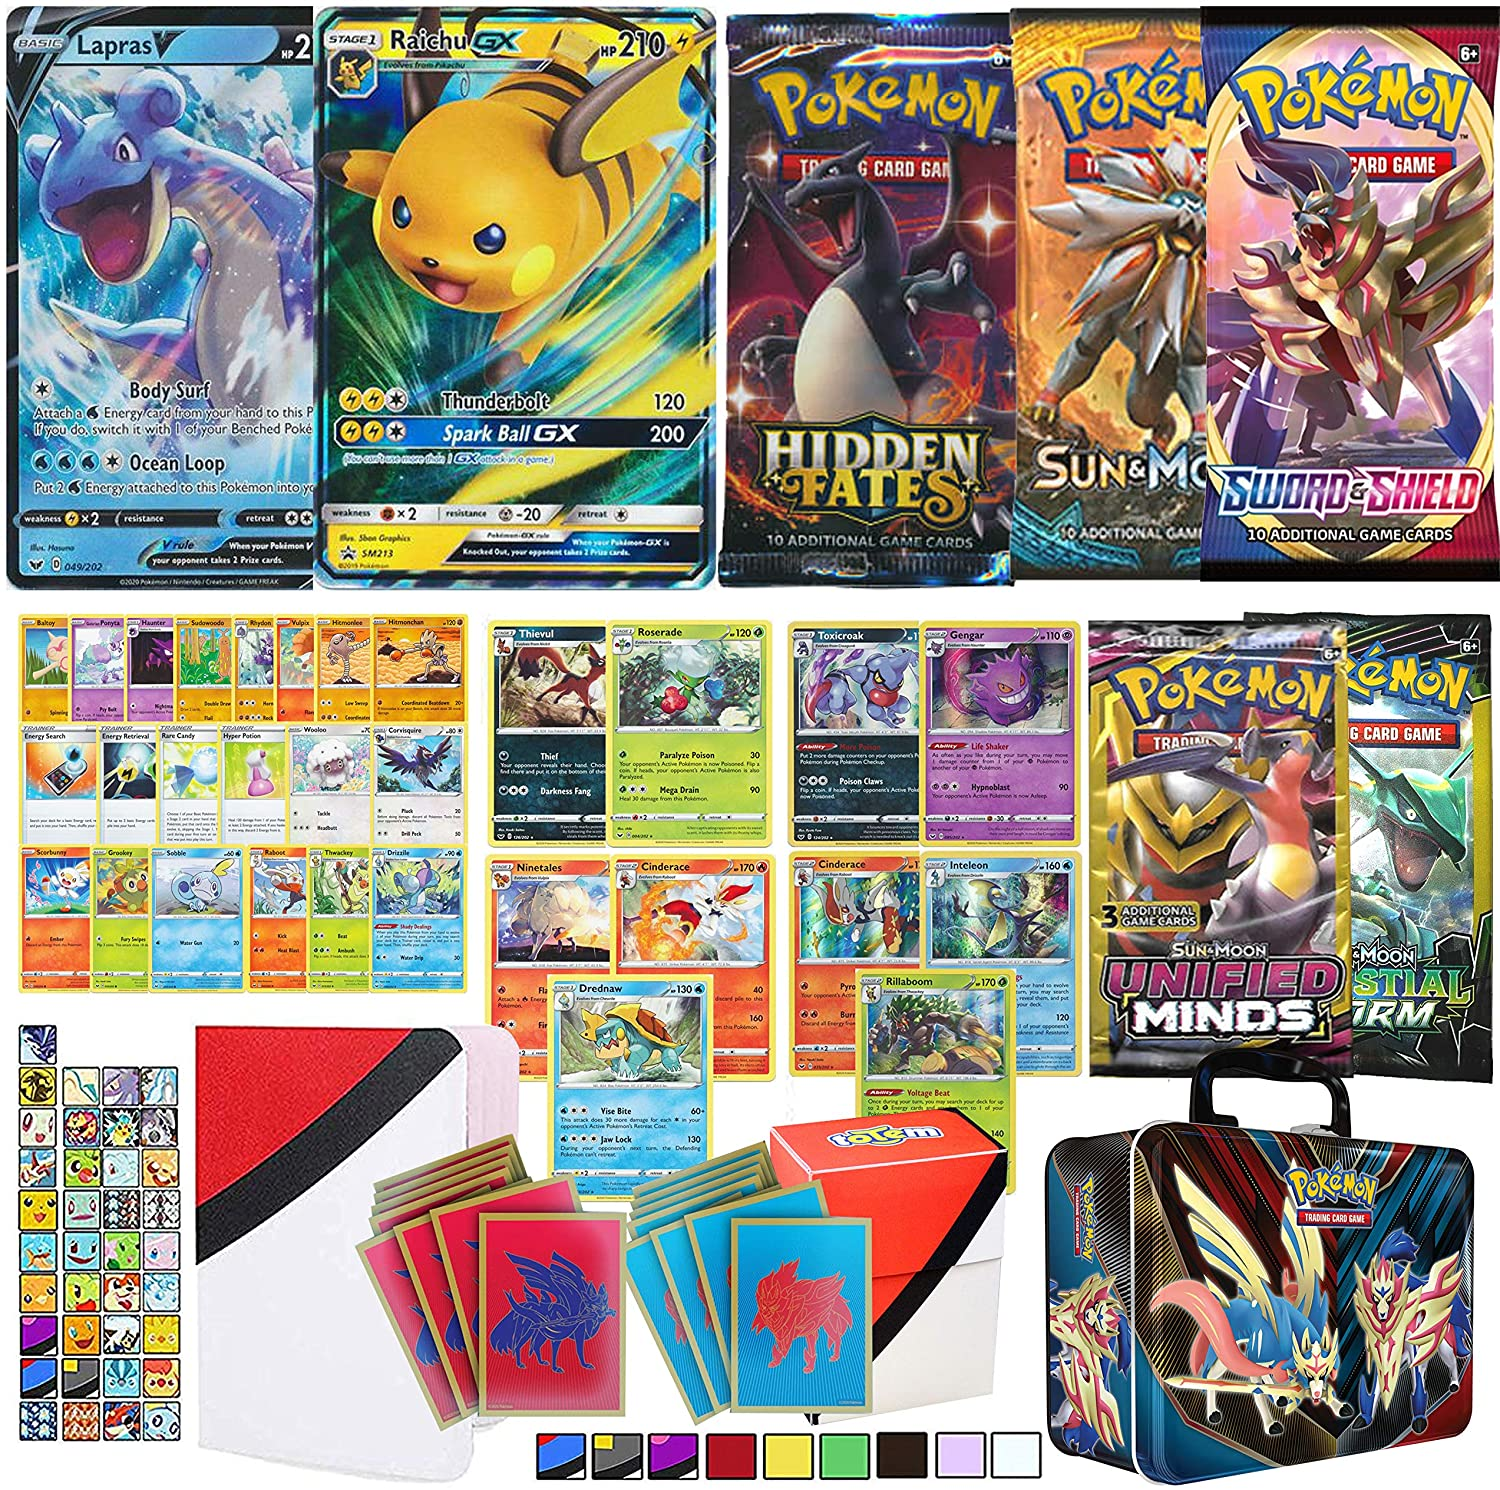 Totem World Collector Chest Bundle: Pokemon GX and V Card Guaranteed, 5 Pokemon Booster Packs Featuring Hidden Fates - Packed with 50 Additional Cards Rare Foil Deck Box Binder 65ct Card Sleeves